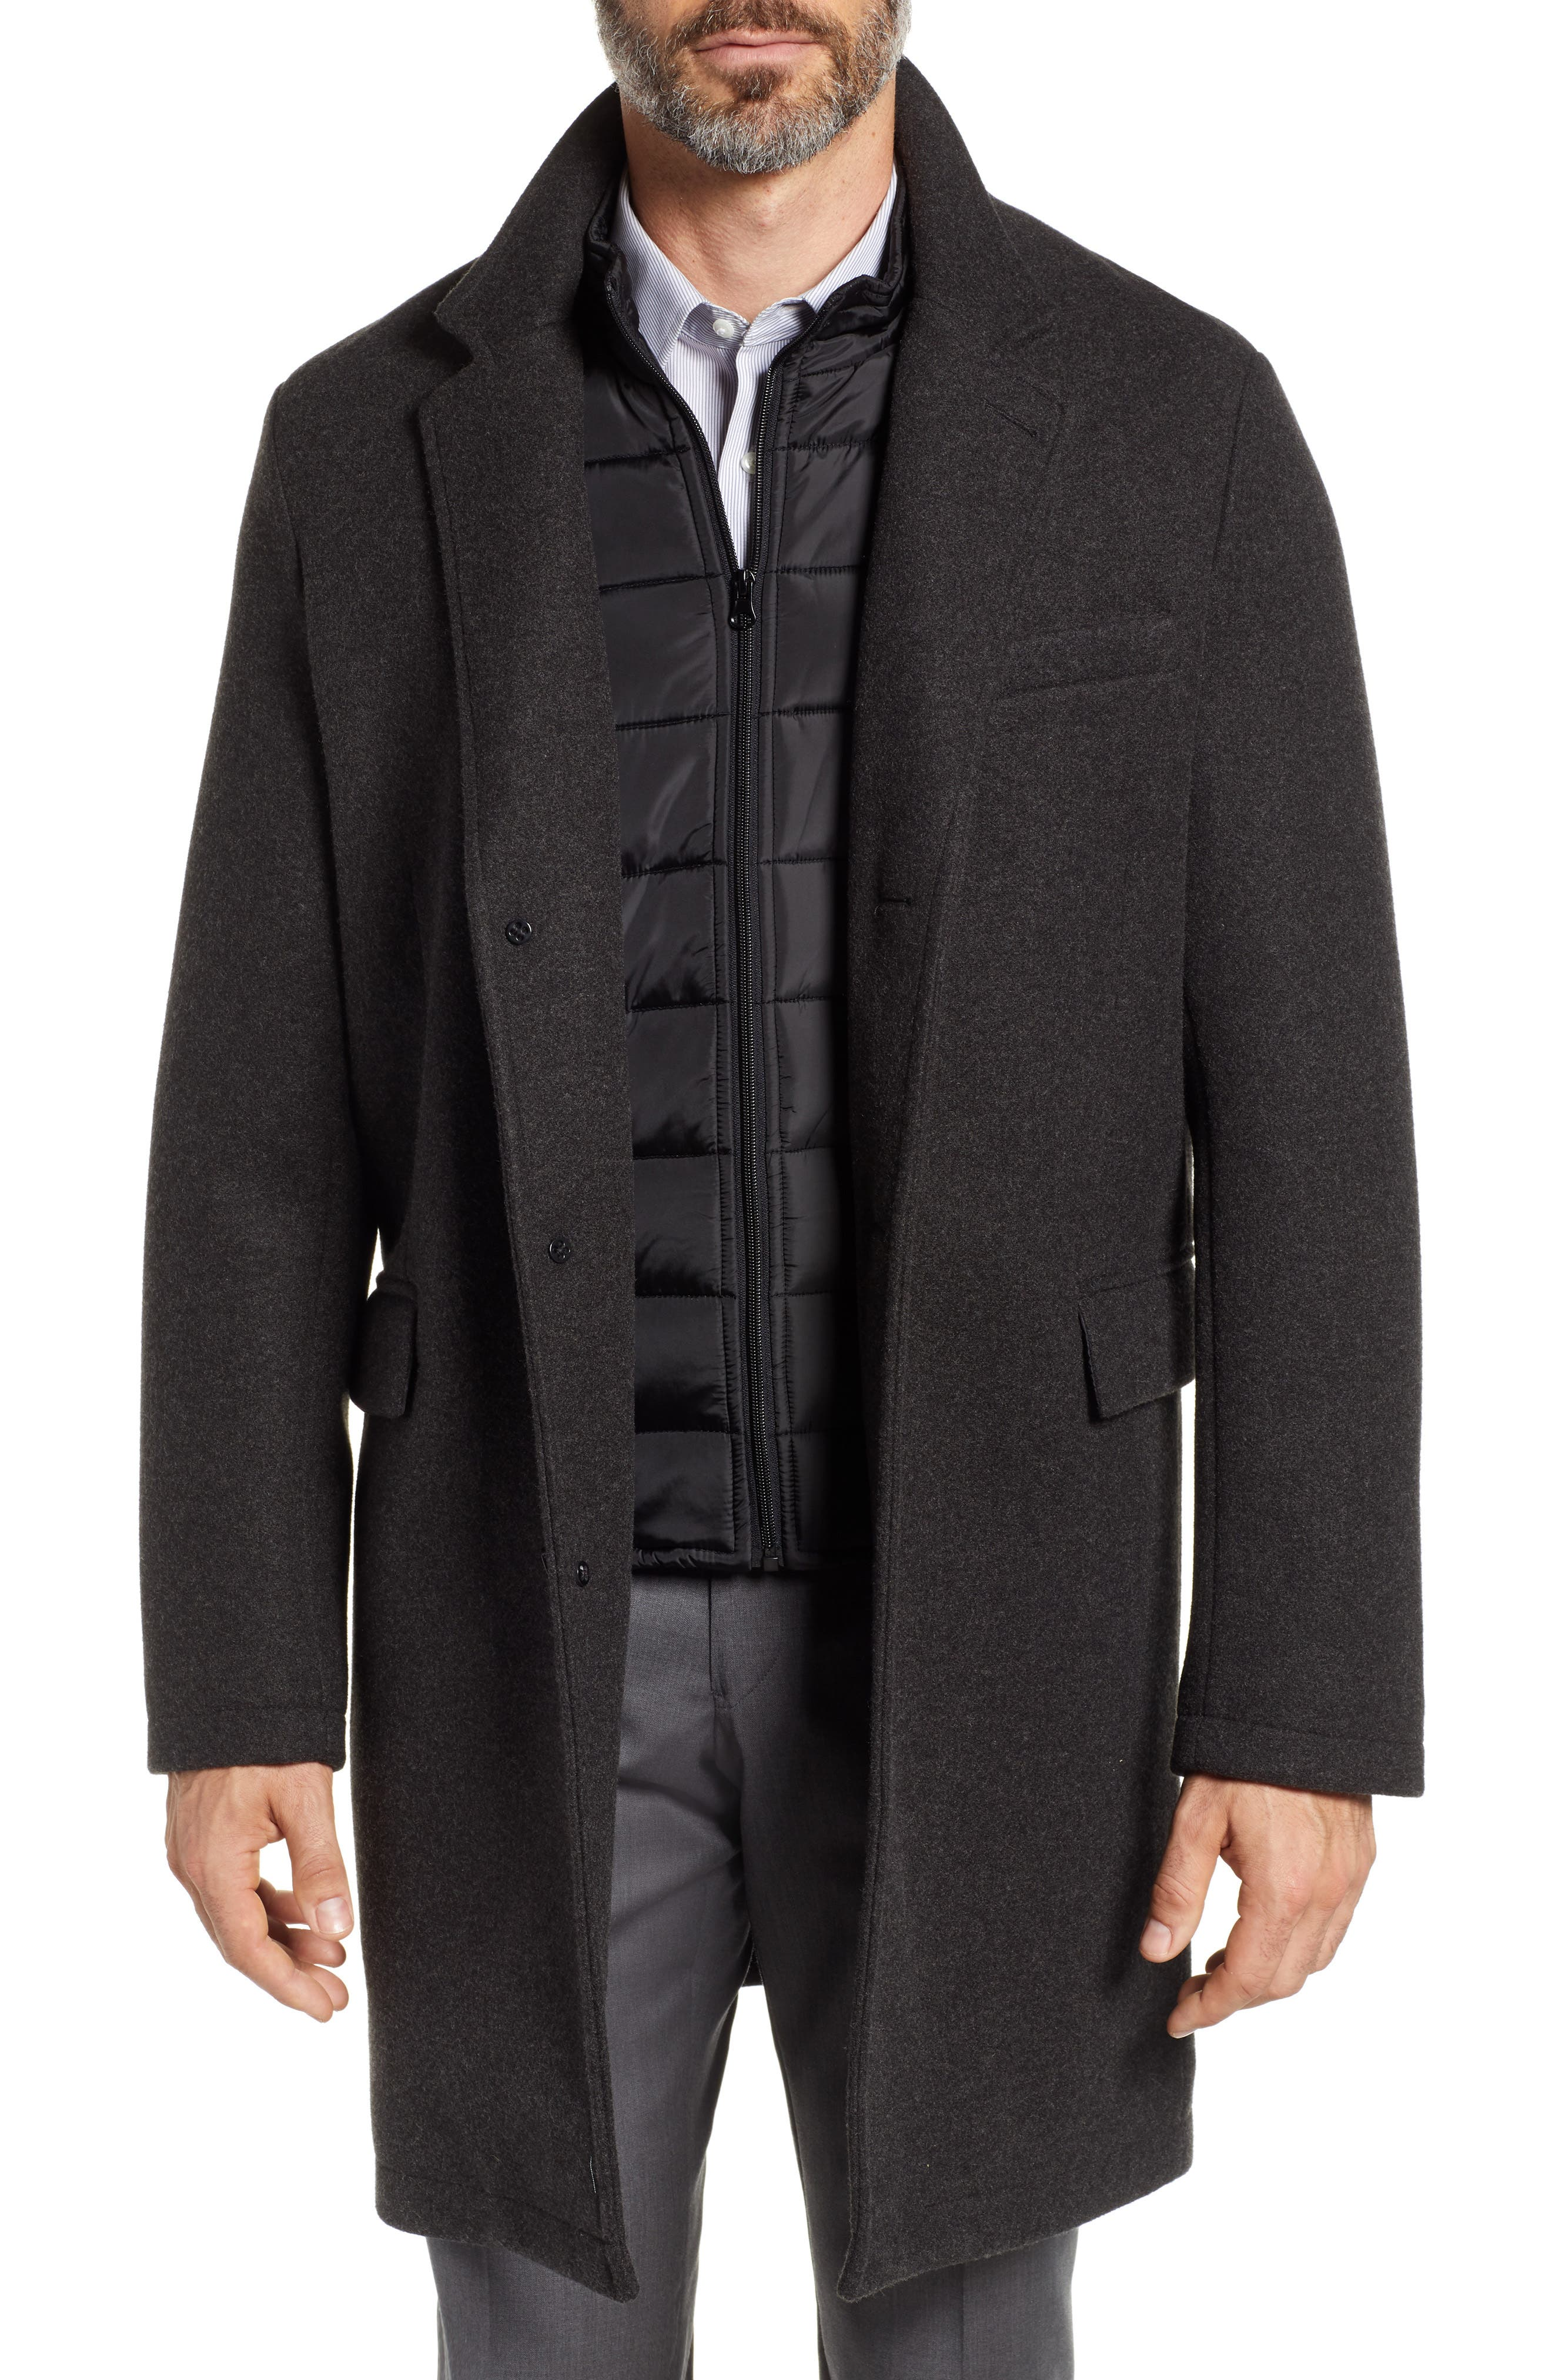 Cunningham Quilted Bib Inset Topcoat,                         Main,                         color, CHARCOAL